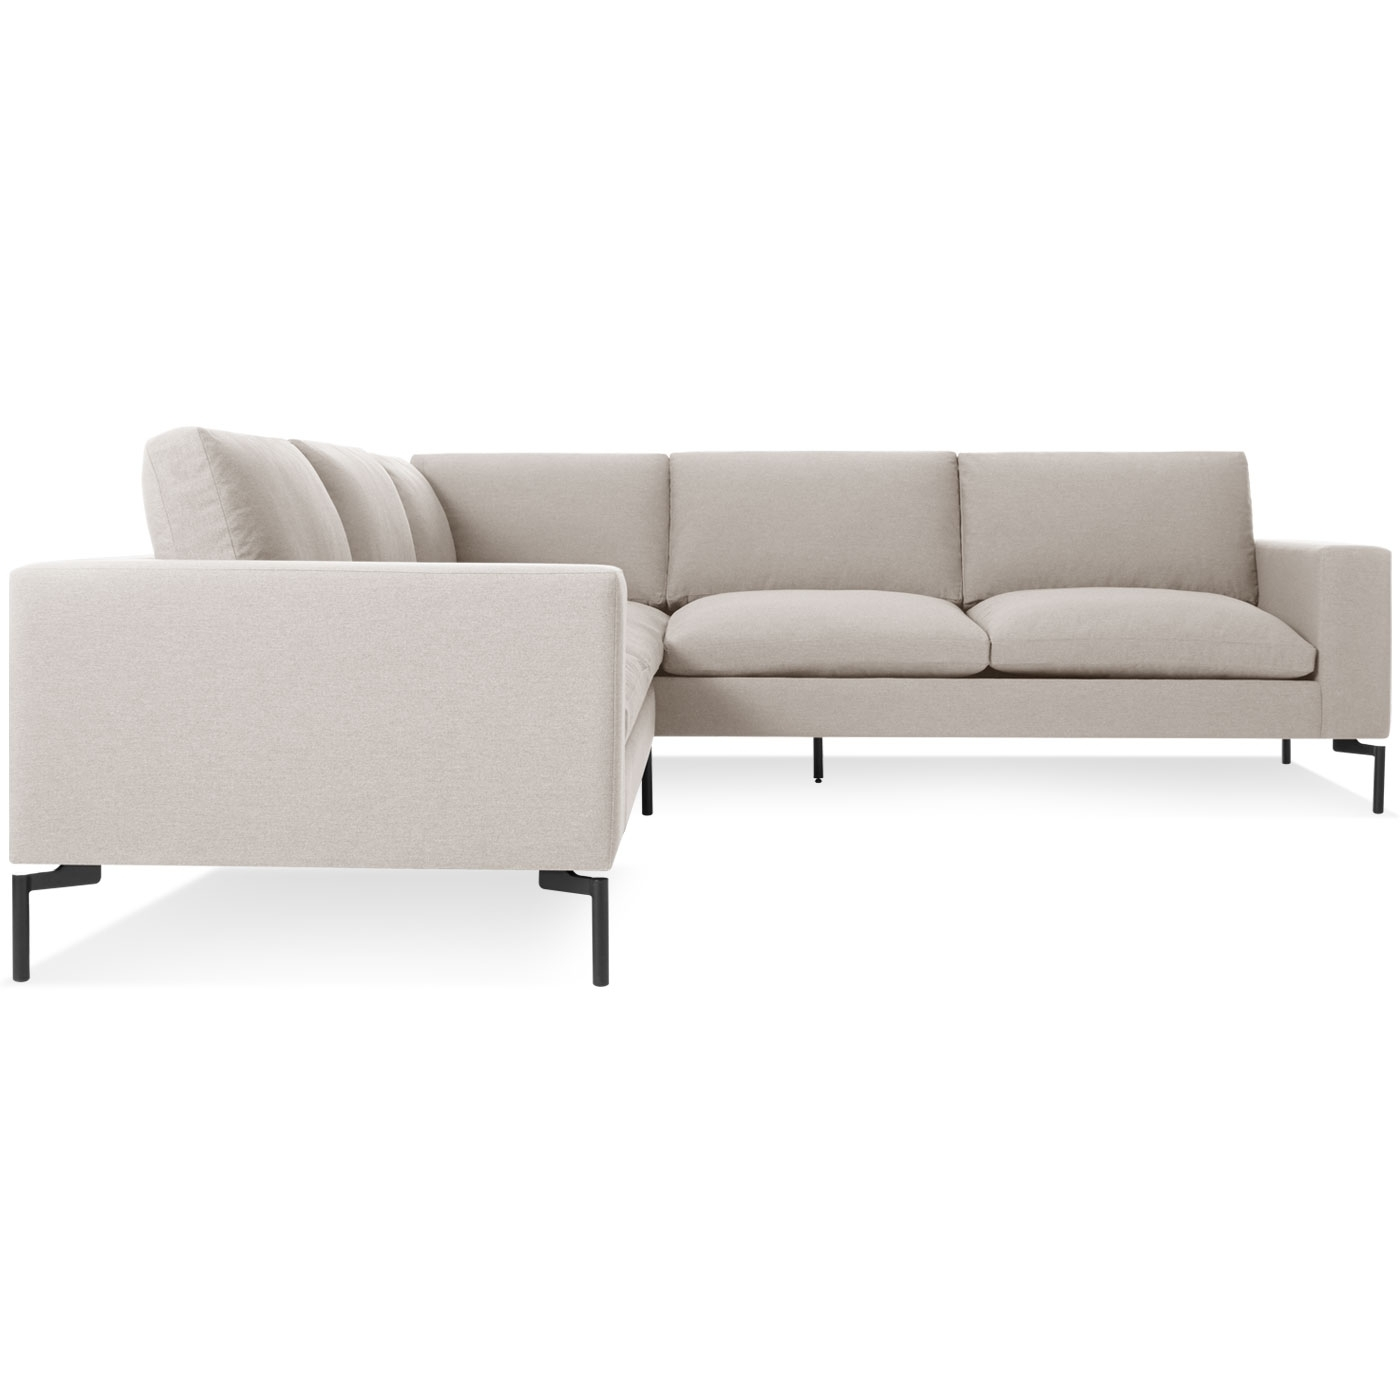 Kijiji Montreal Sectional Sofas Intended For Newest New Standard Small Sectional Sofa – Modern Sofas (View 8 of 15)